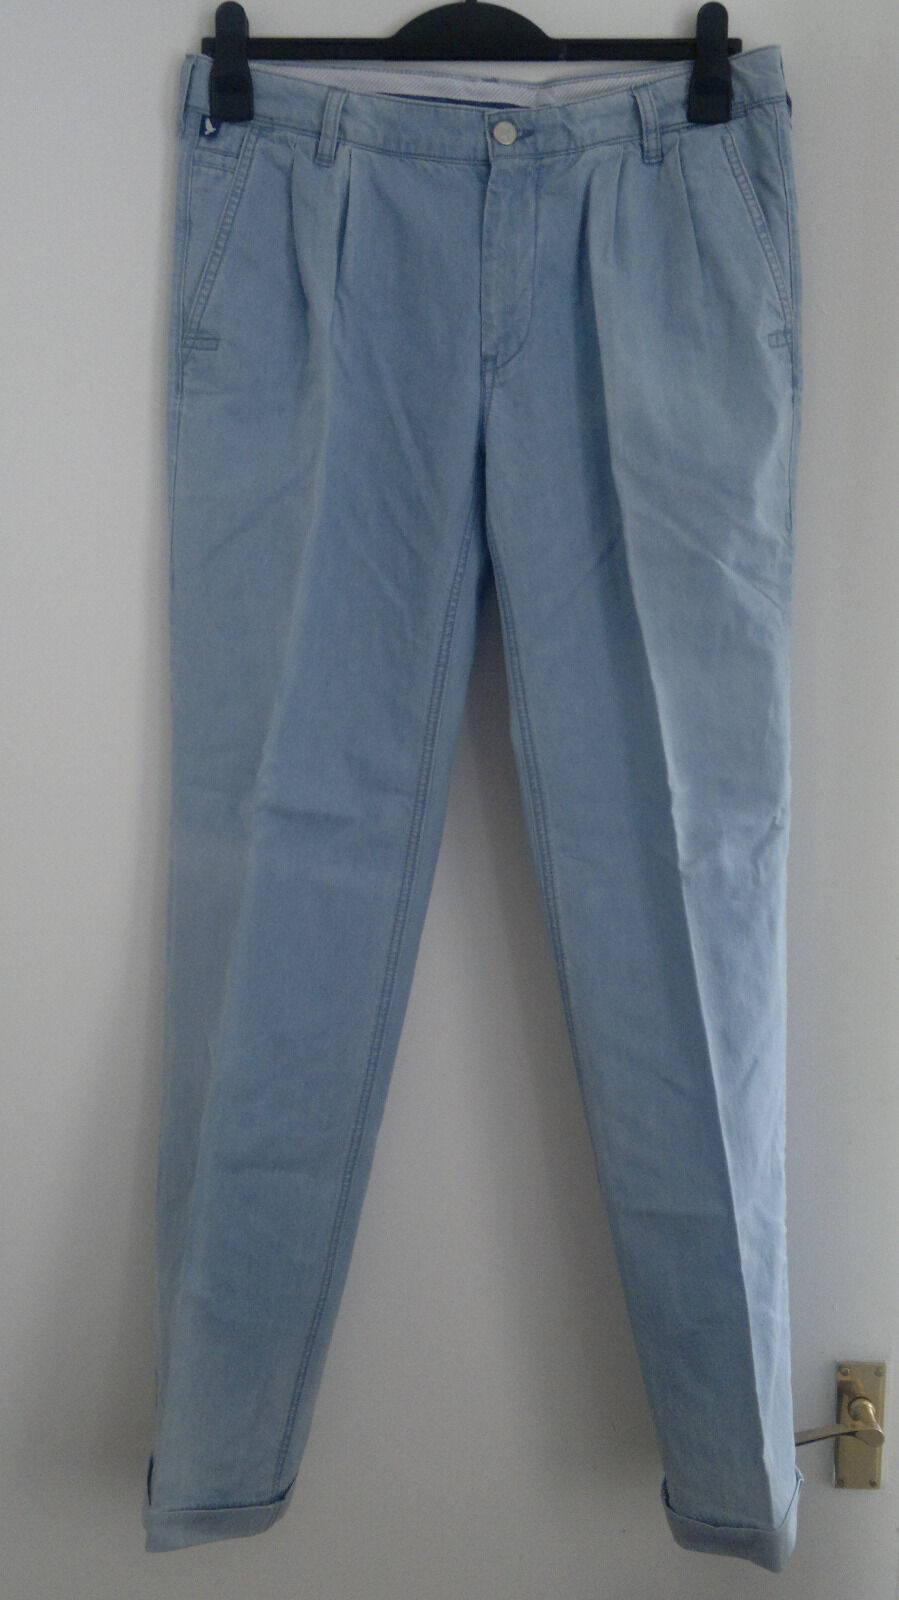 Women's MiH Trousers Size 29